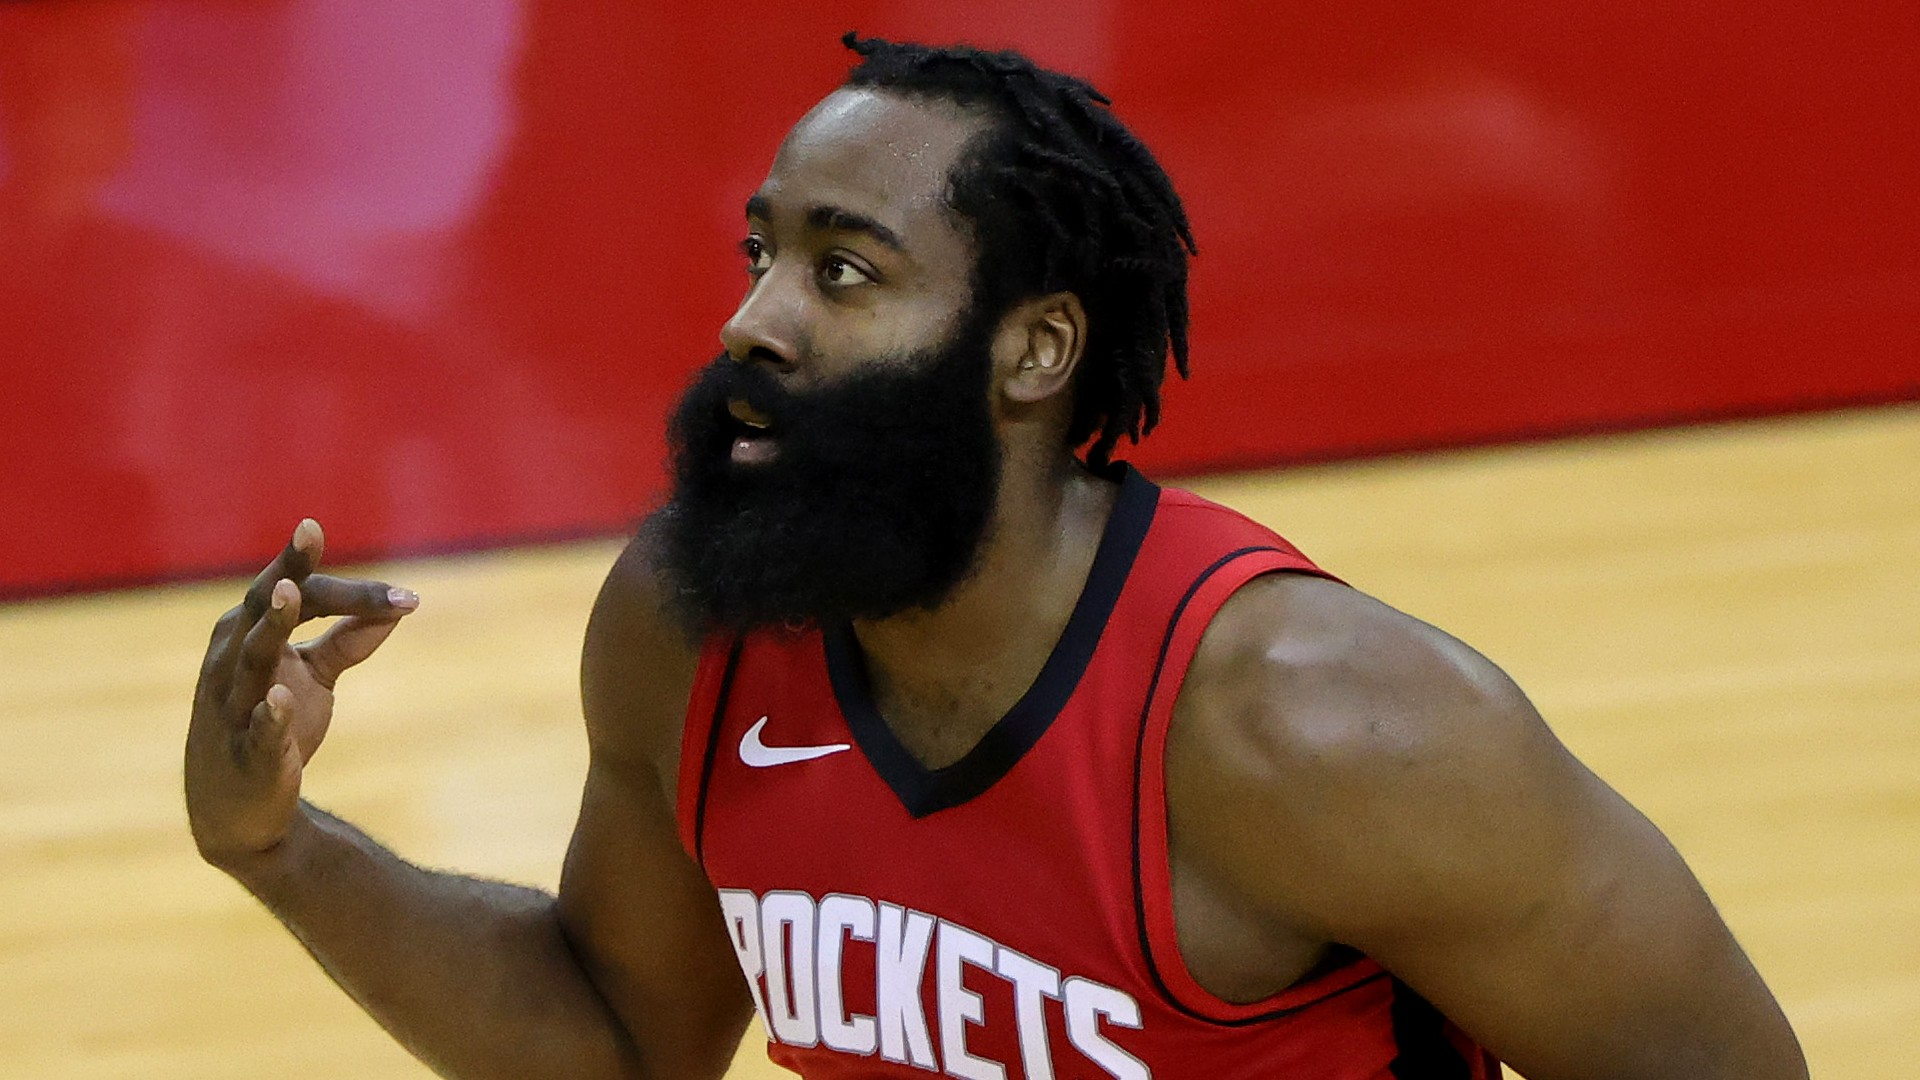 James Harden trade rumors: Latest news, updates with talks for Rockets star 'moving quickly'